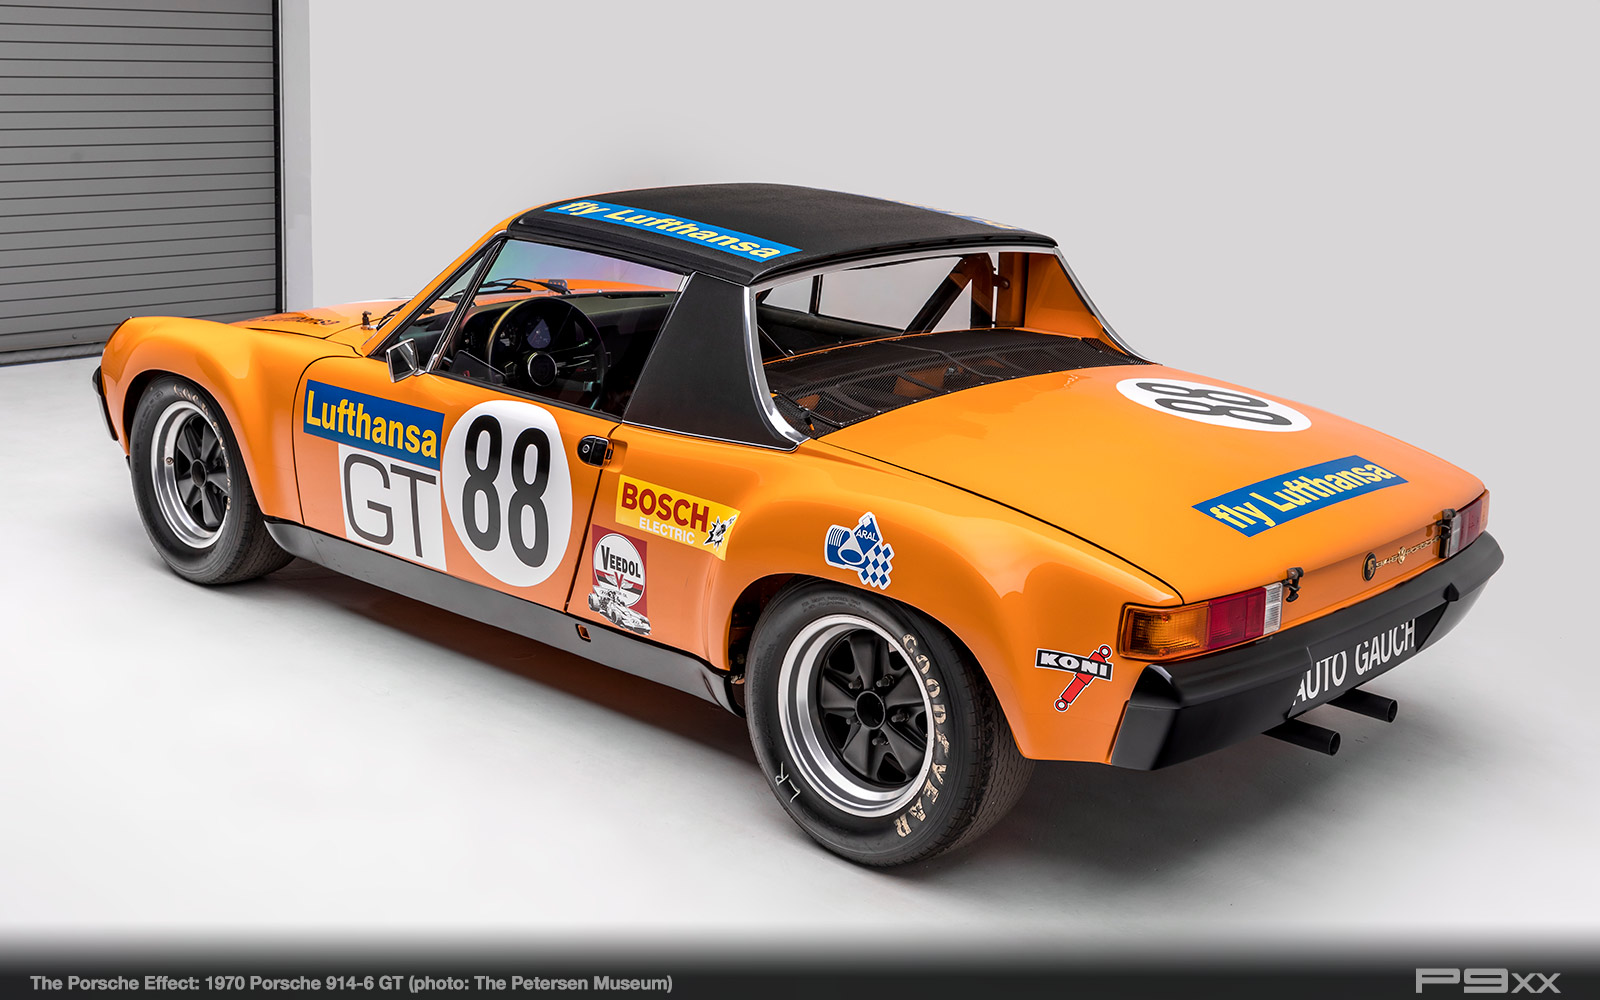 1970-914-6-GT-Chassis-134-Petersen-Automotive-Museum-The-Porsche-Effect-371